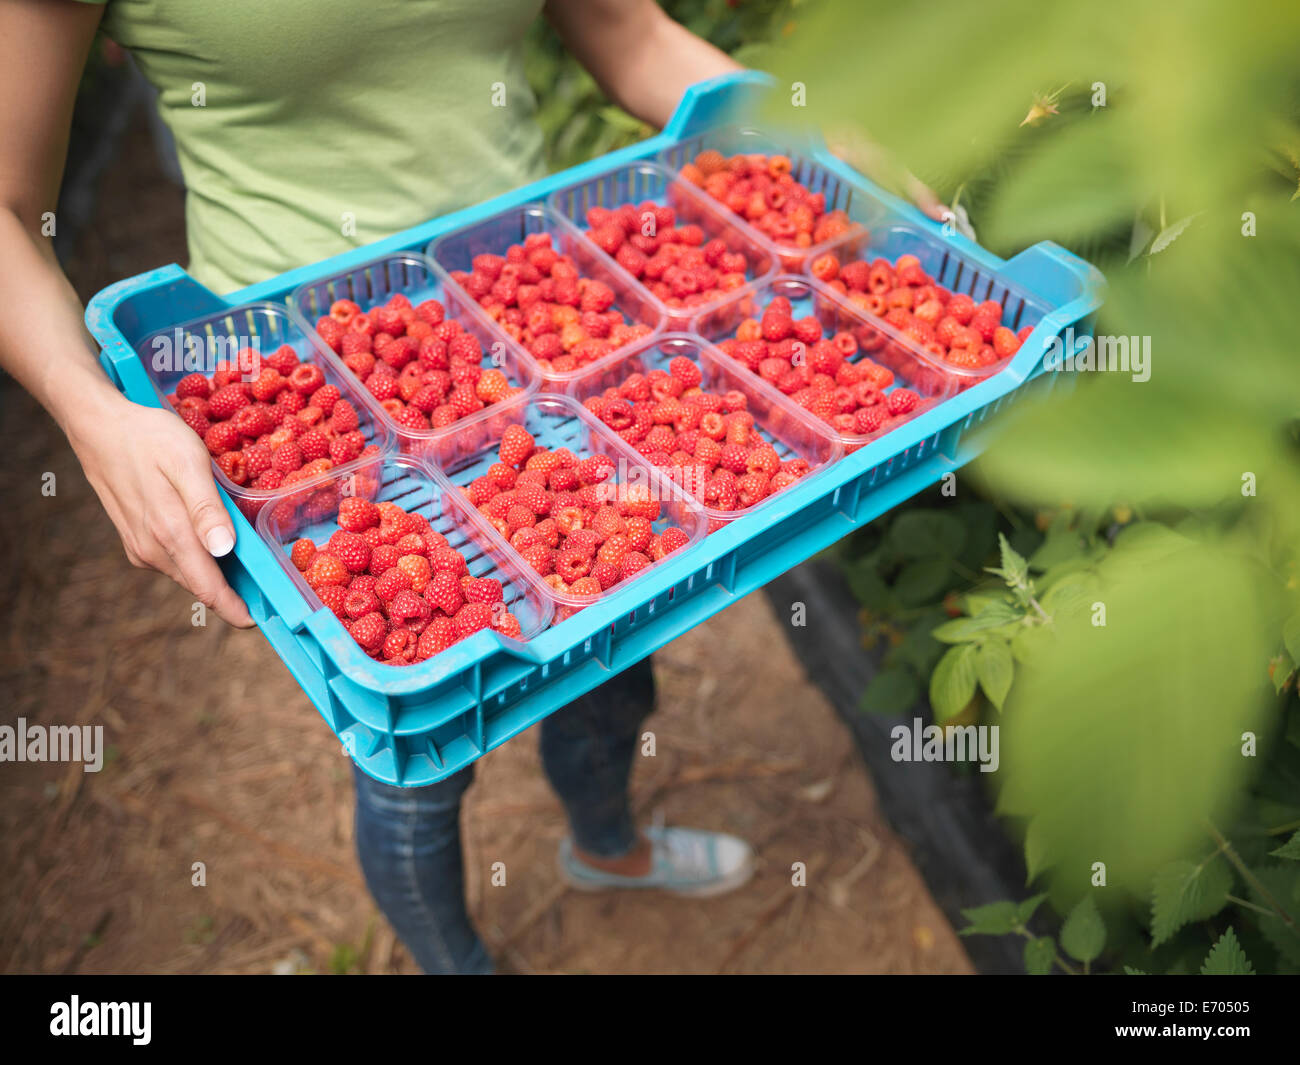 Worker holding tray of freshly picked raspberries in punnets on fruit farm - Stock Image